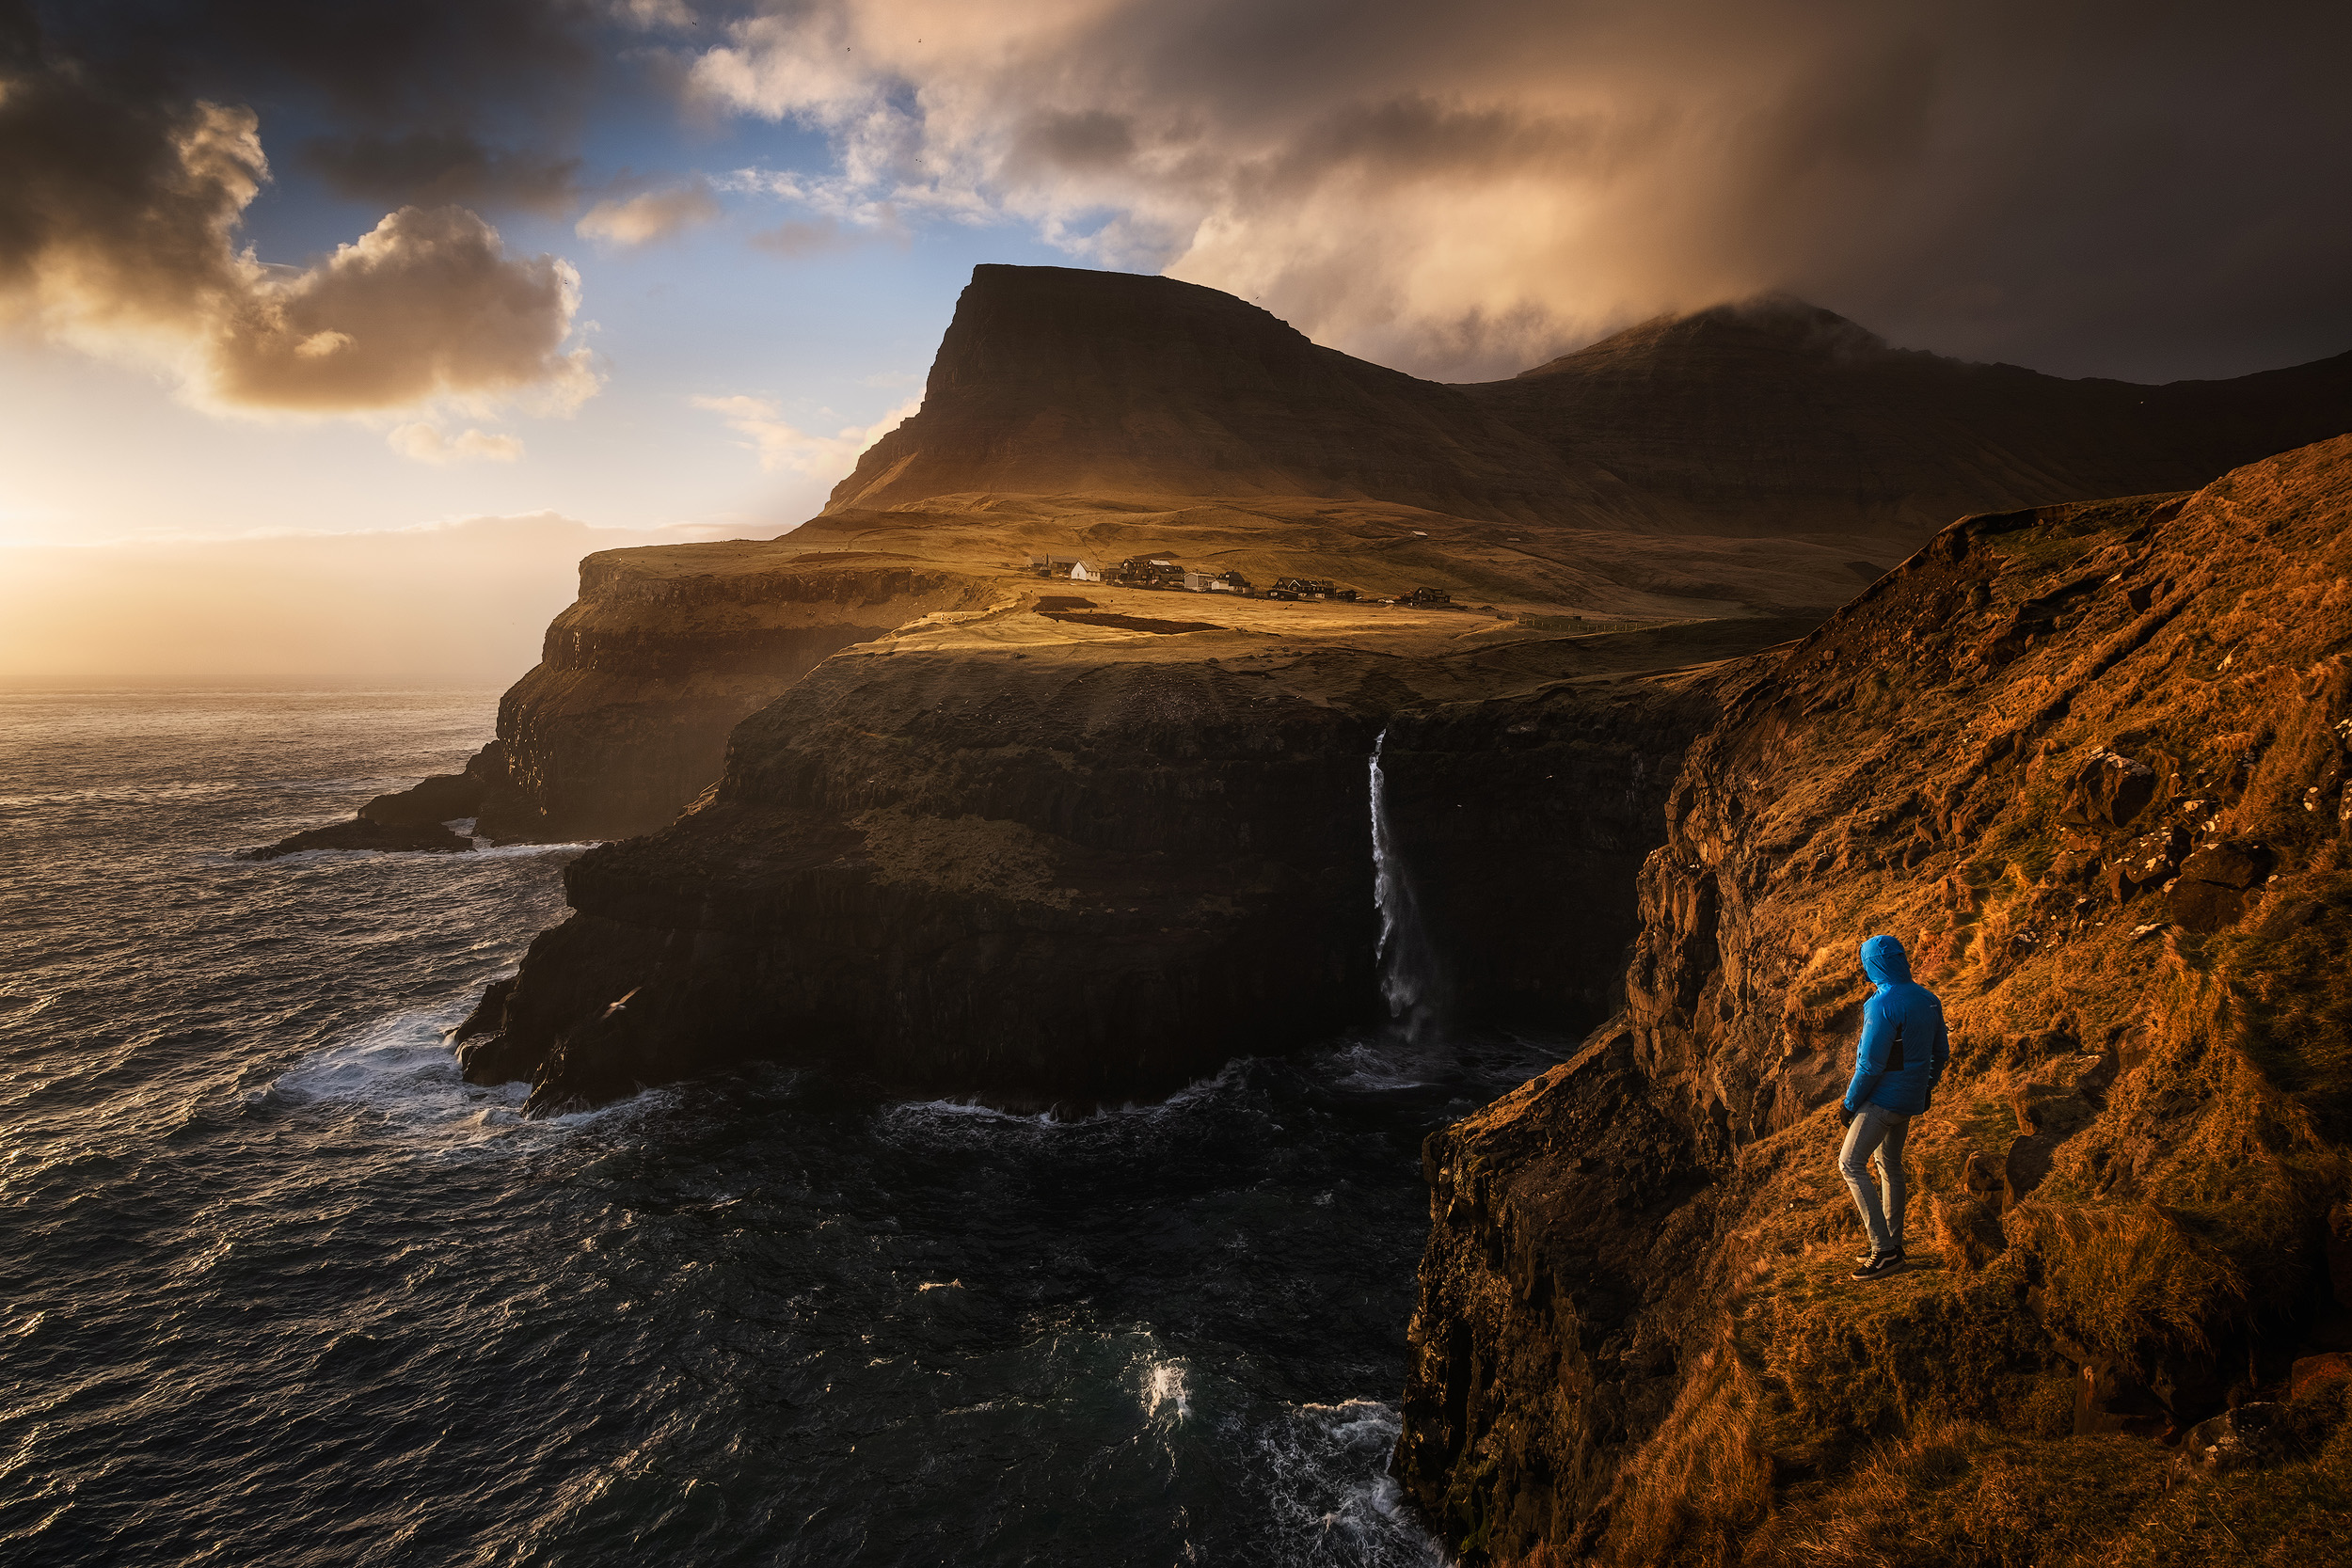 Gásadalur   The beautiful village of Gásadalur in the Faroe Islands at sunset-